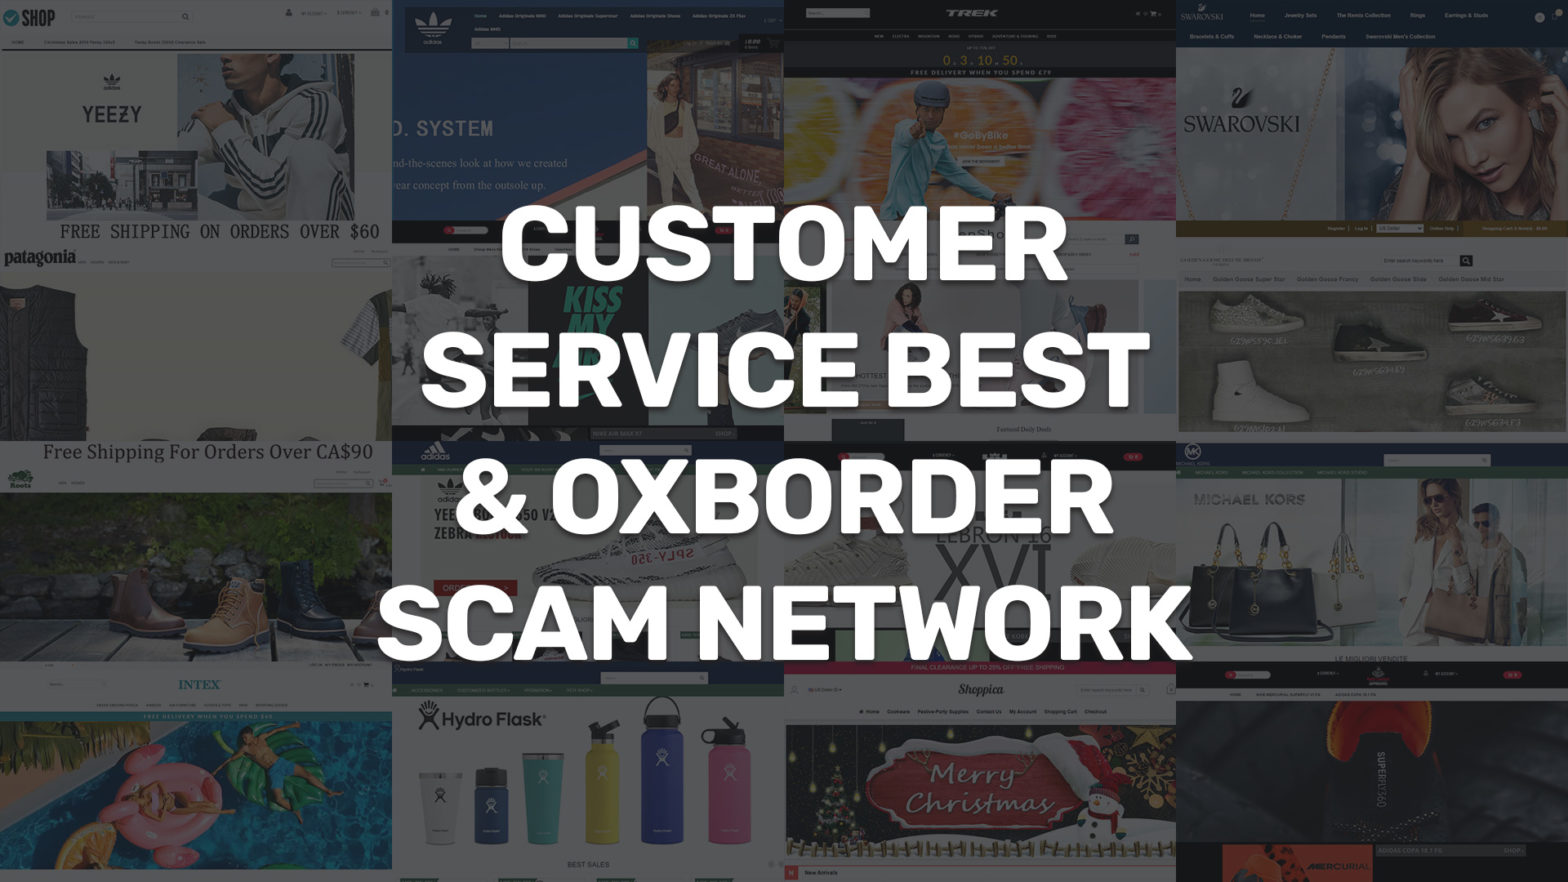 customerservicebest oxborder fake website scam network